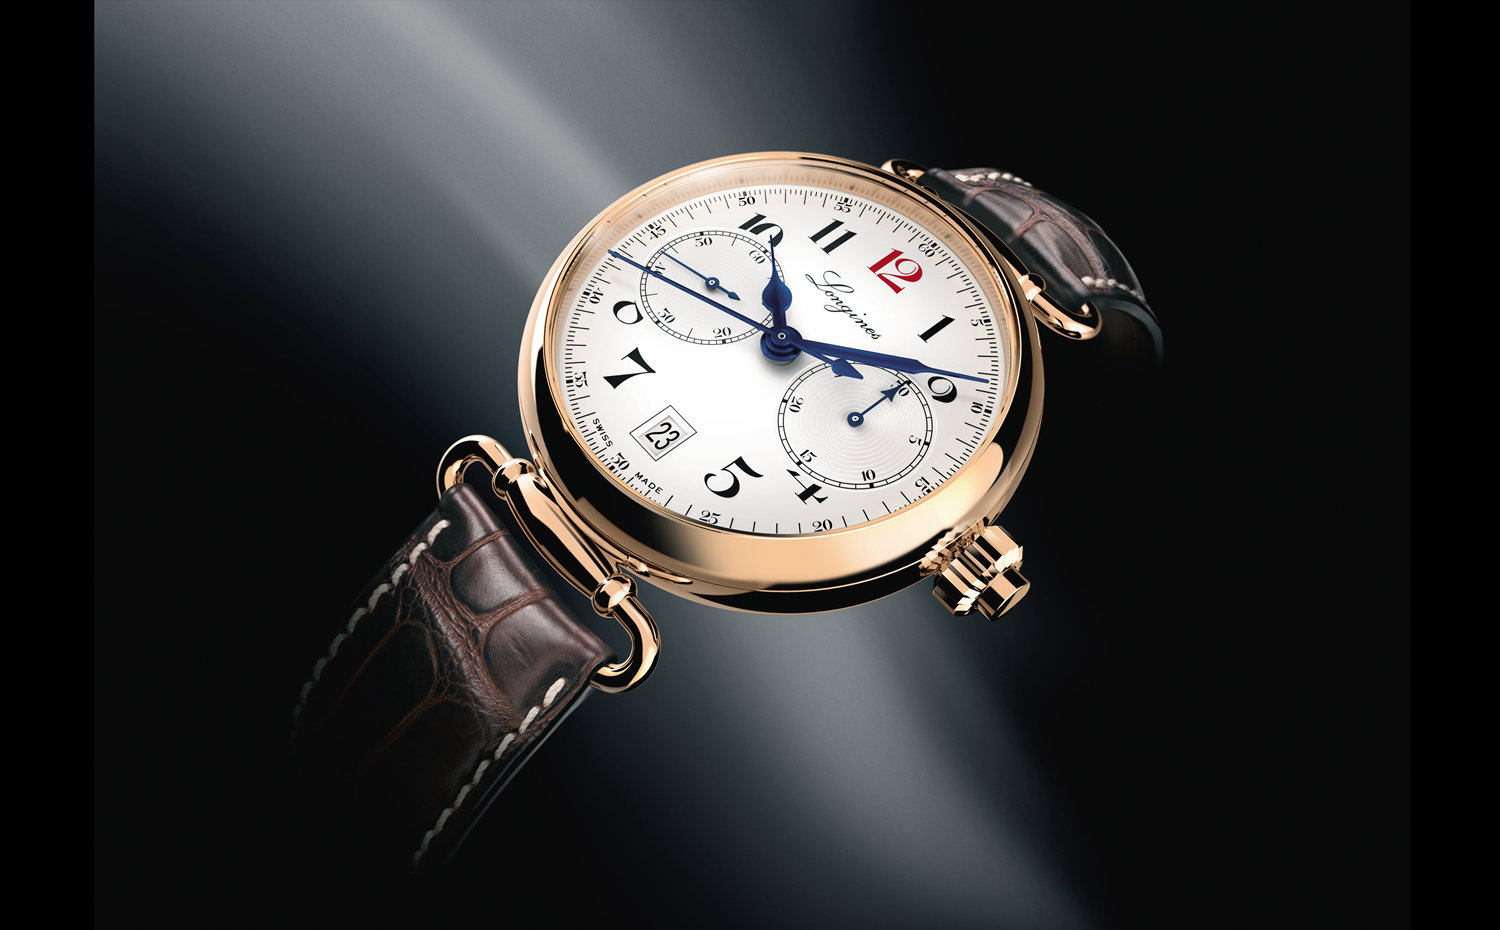 The Longines Column-Wheel Single Push-Piece Chronograph